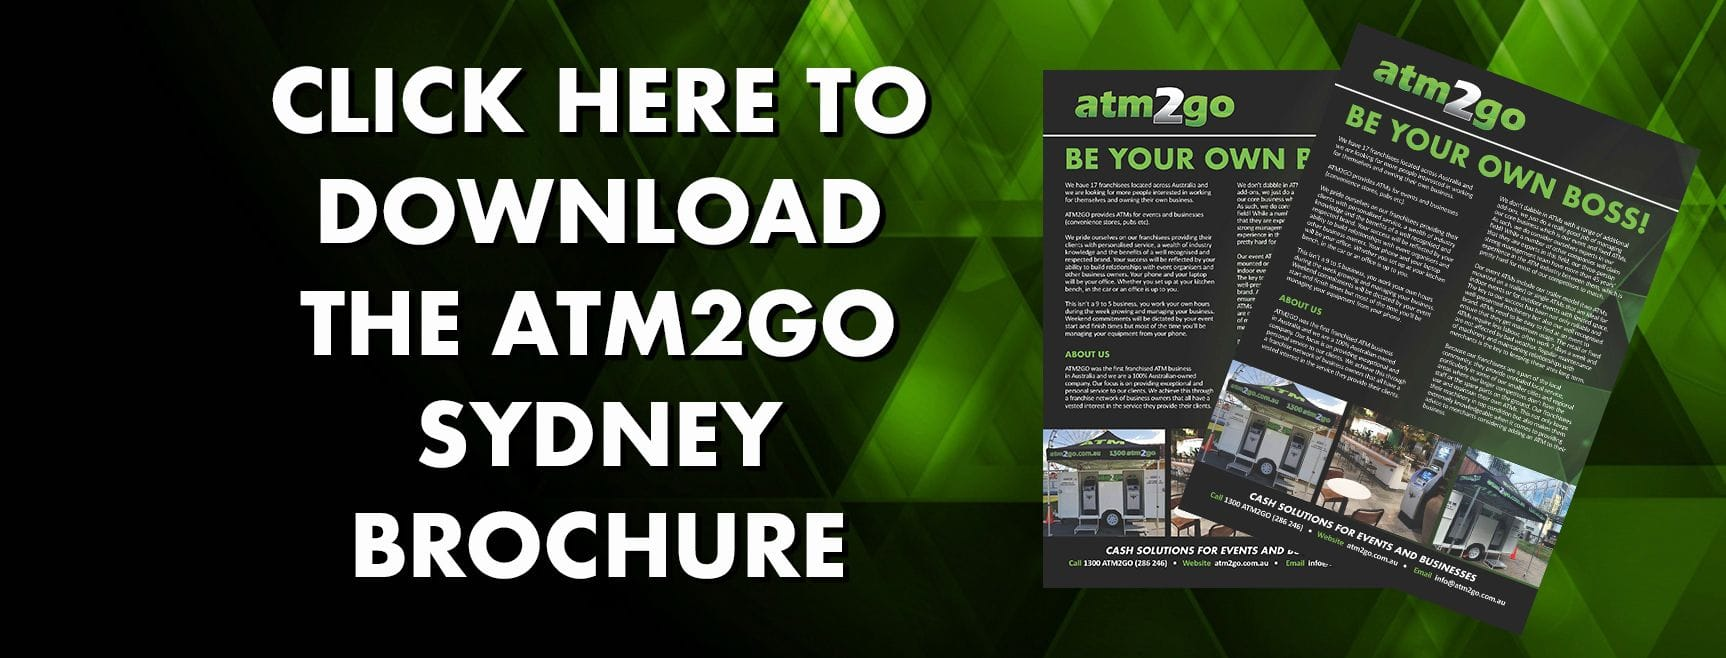 click here to download the franchise brochure